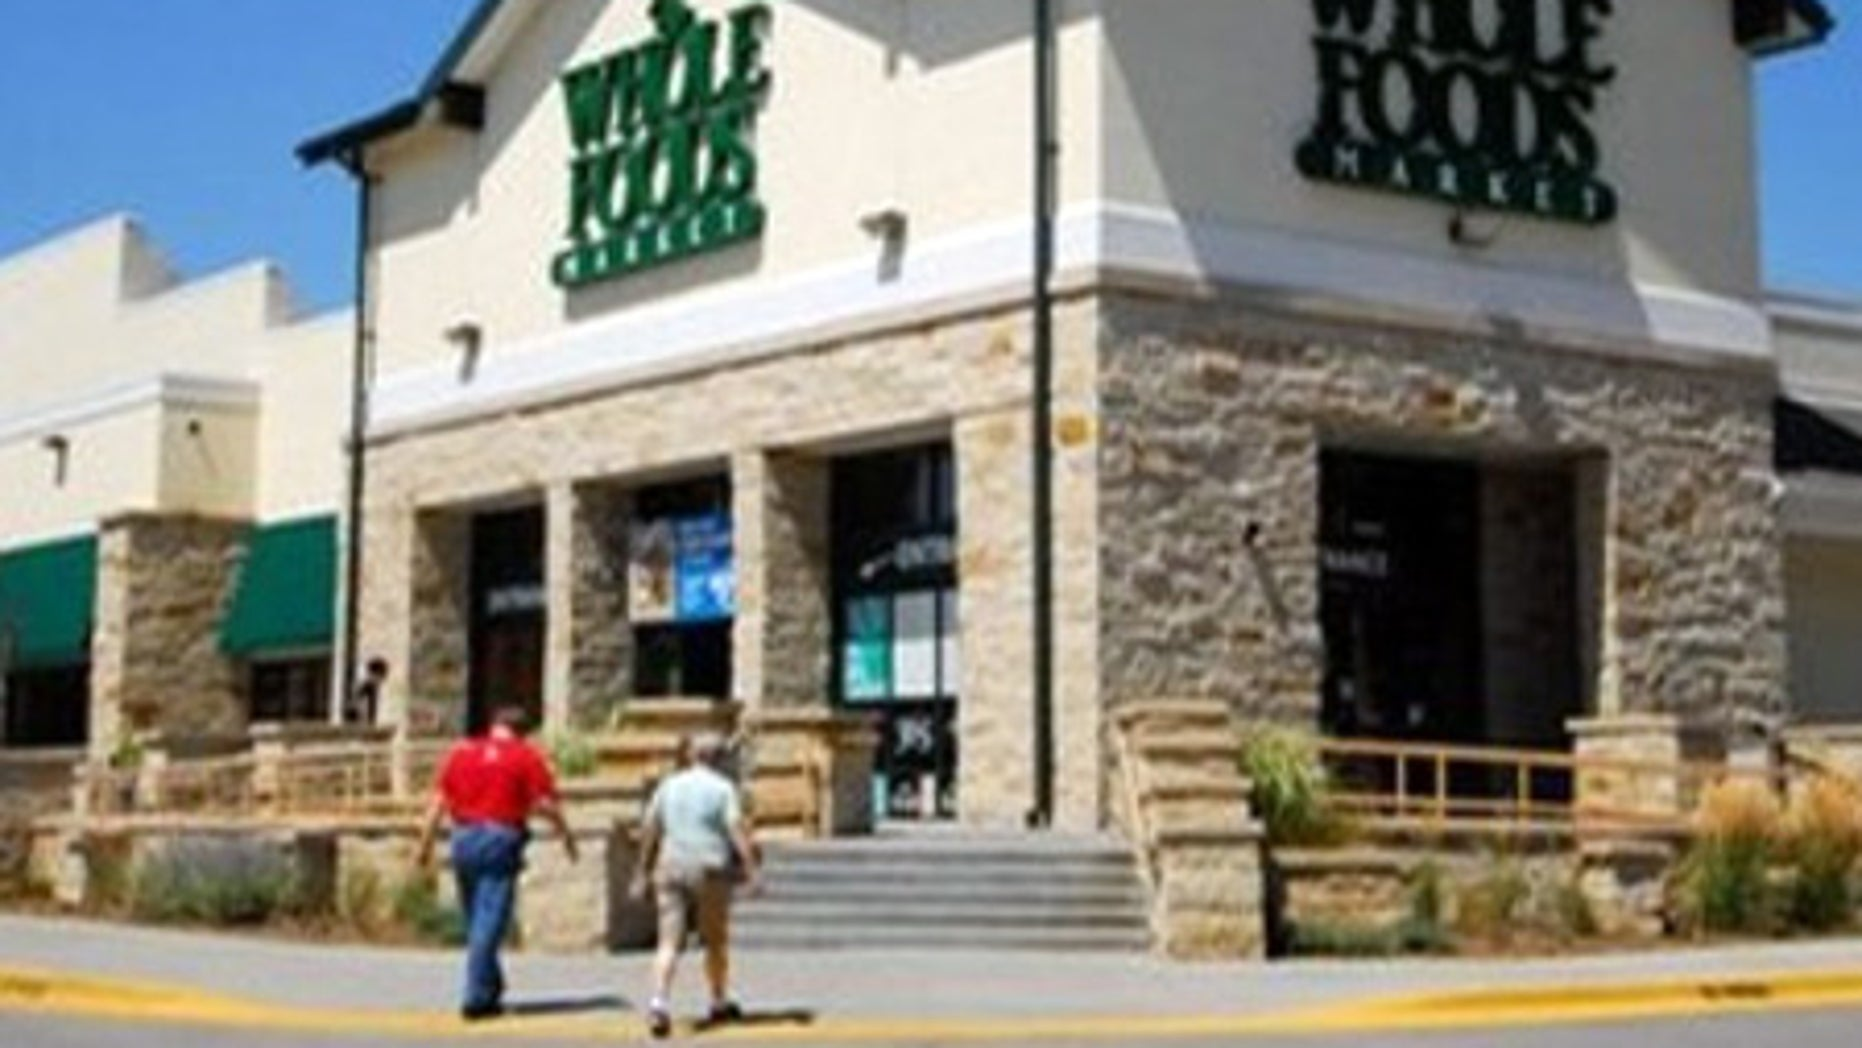 File: A Whole Foods store in Omaha, Neb.